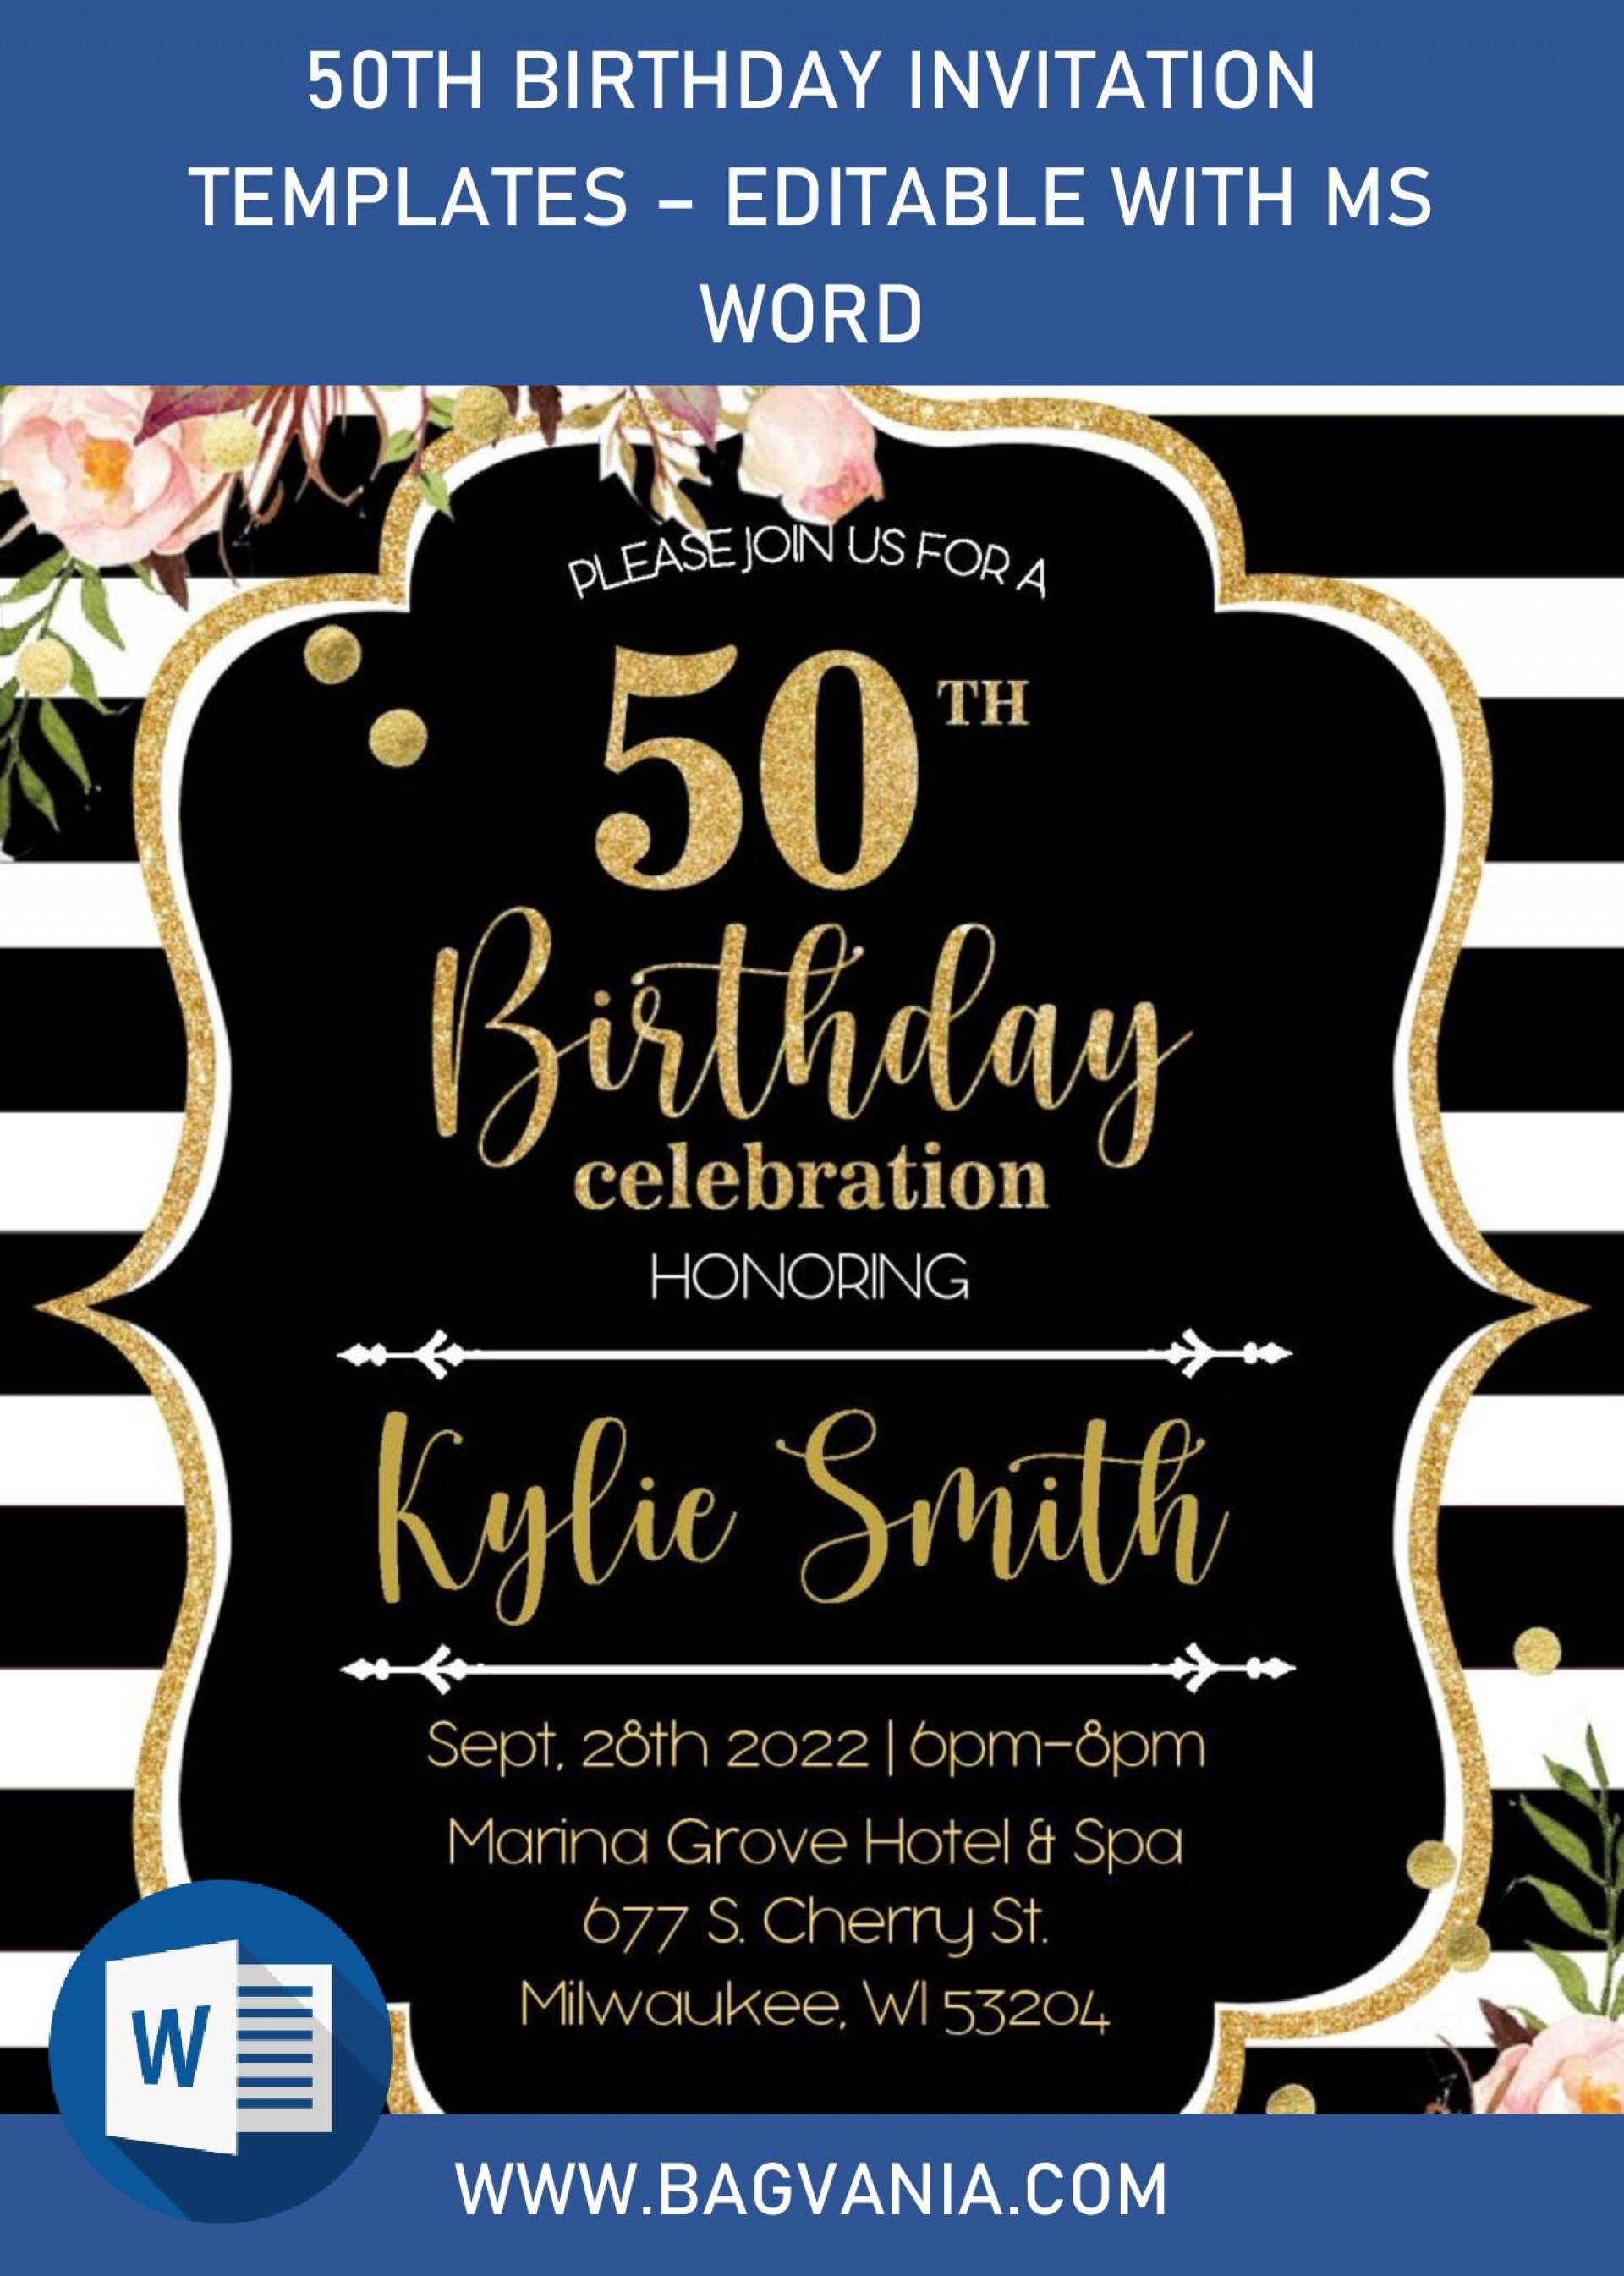 003 Phenomenal Microsoft Word 50th Birthday Invitation Template Highest Quality  Wedding Anniversary Editable1920